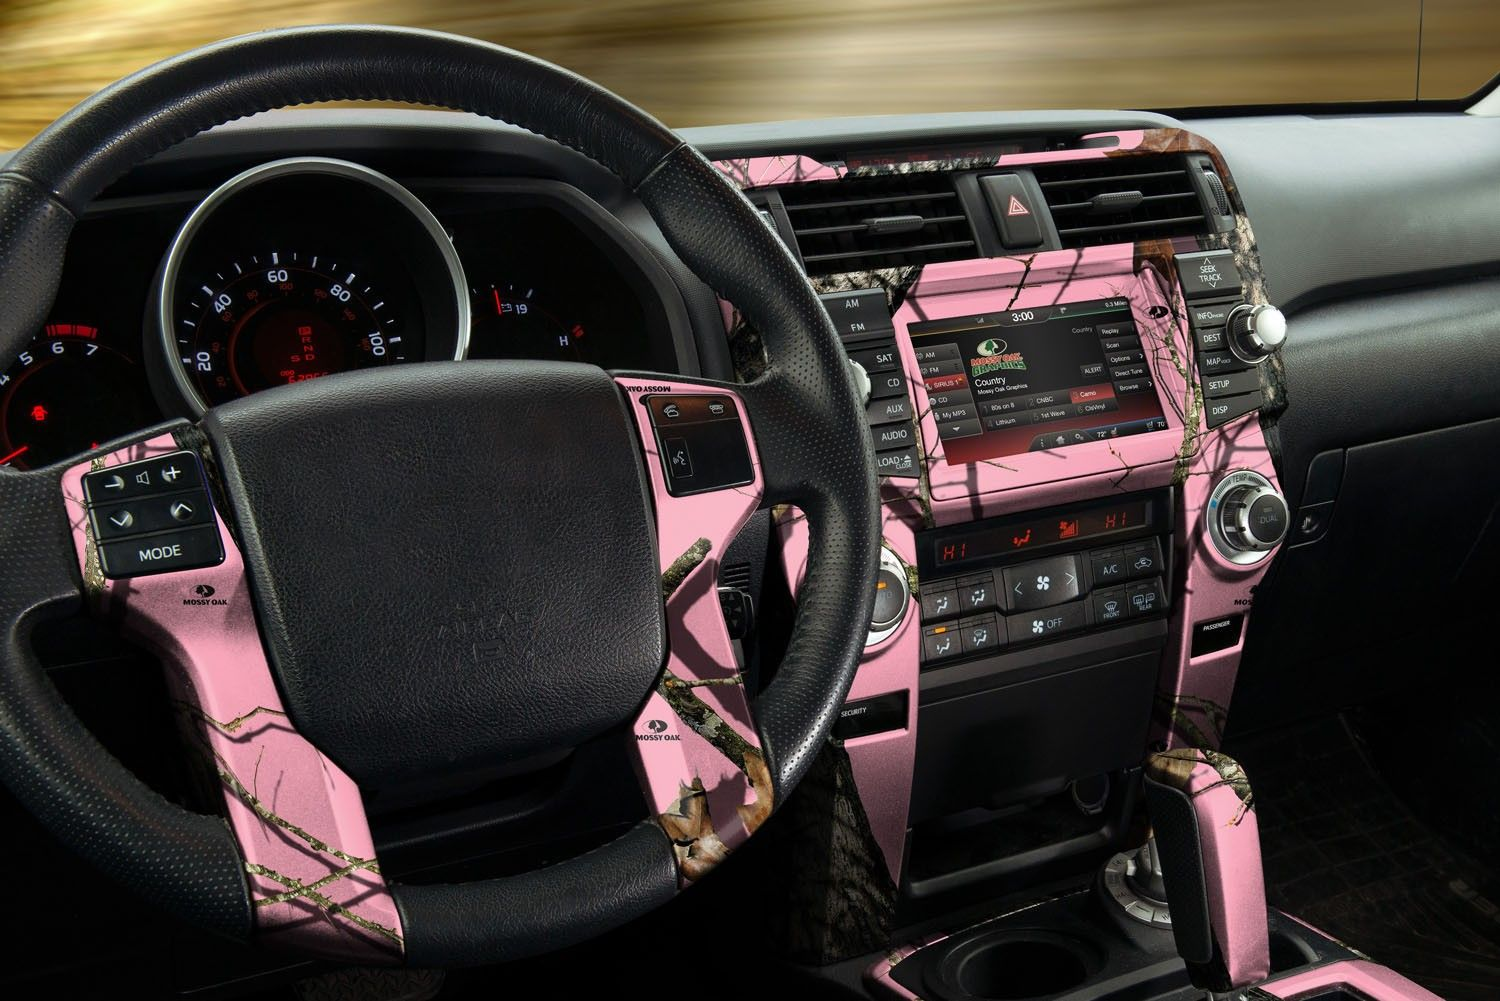 Pink Interior Car How To Install Details Camo Vinyl To Deck Out The Interior Of Your Car